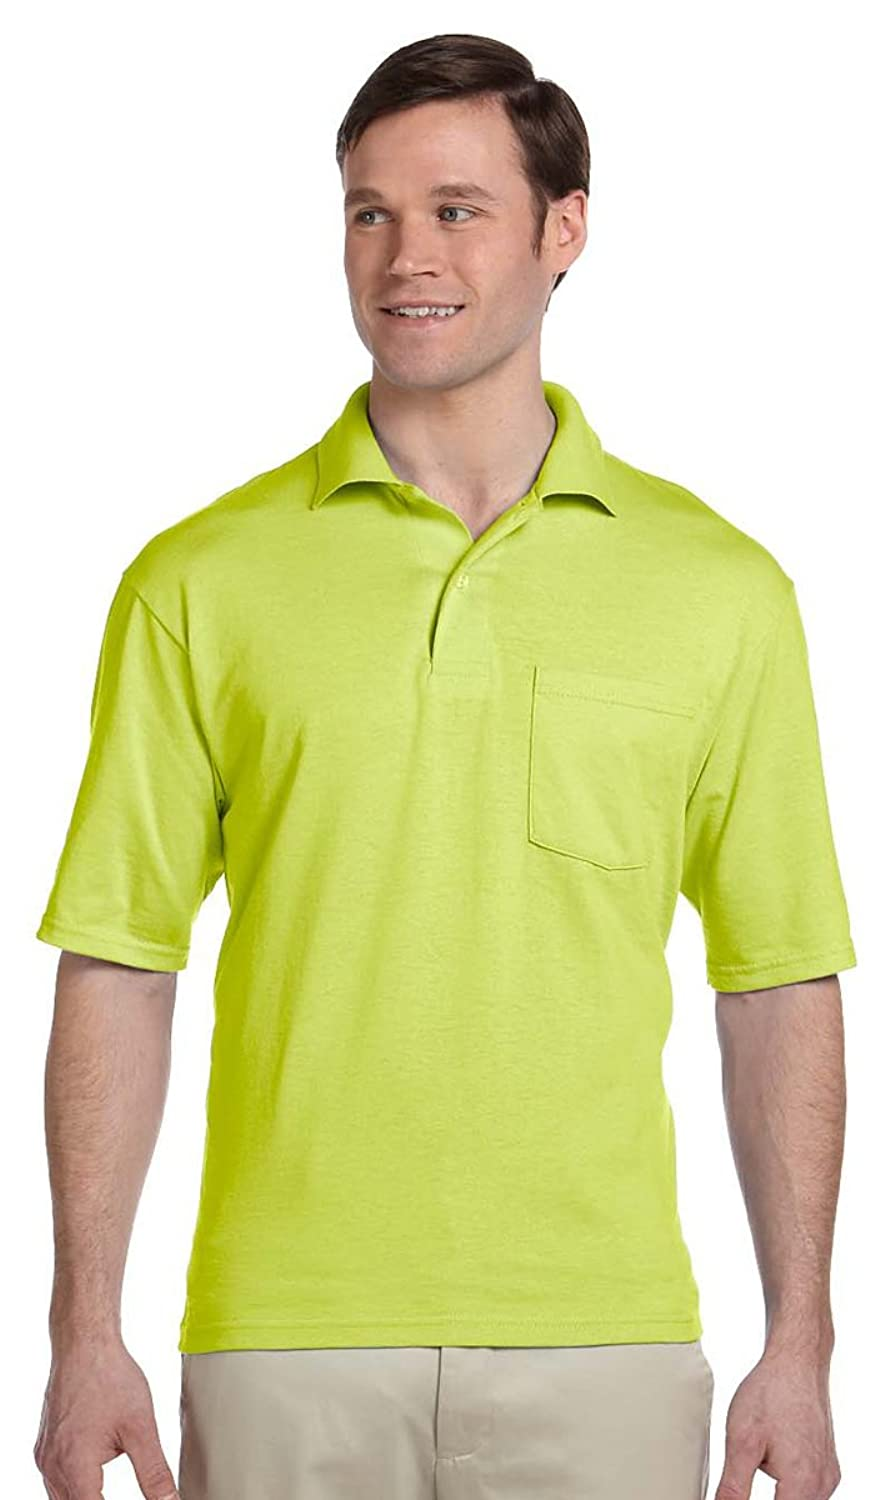 Jerzees 56 oz, 50/50 Jersey Pocket Polo with SpotShield -436P- SAFETY GREEN,M